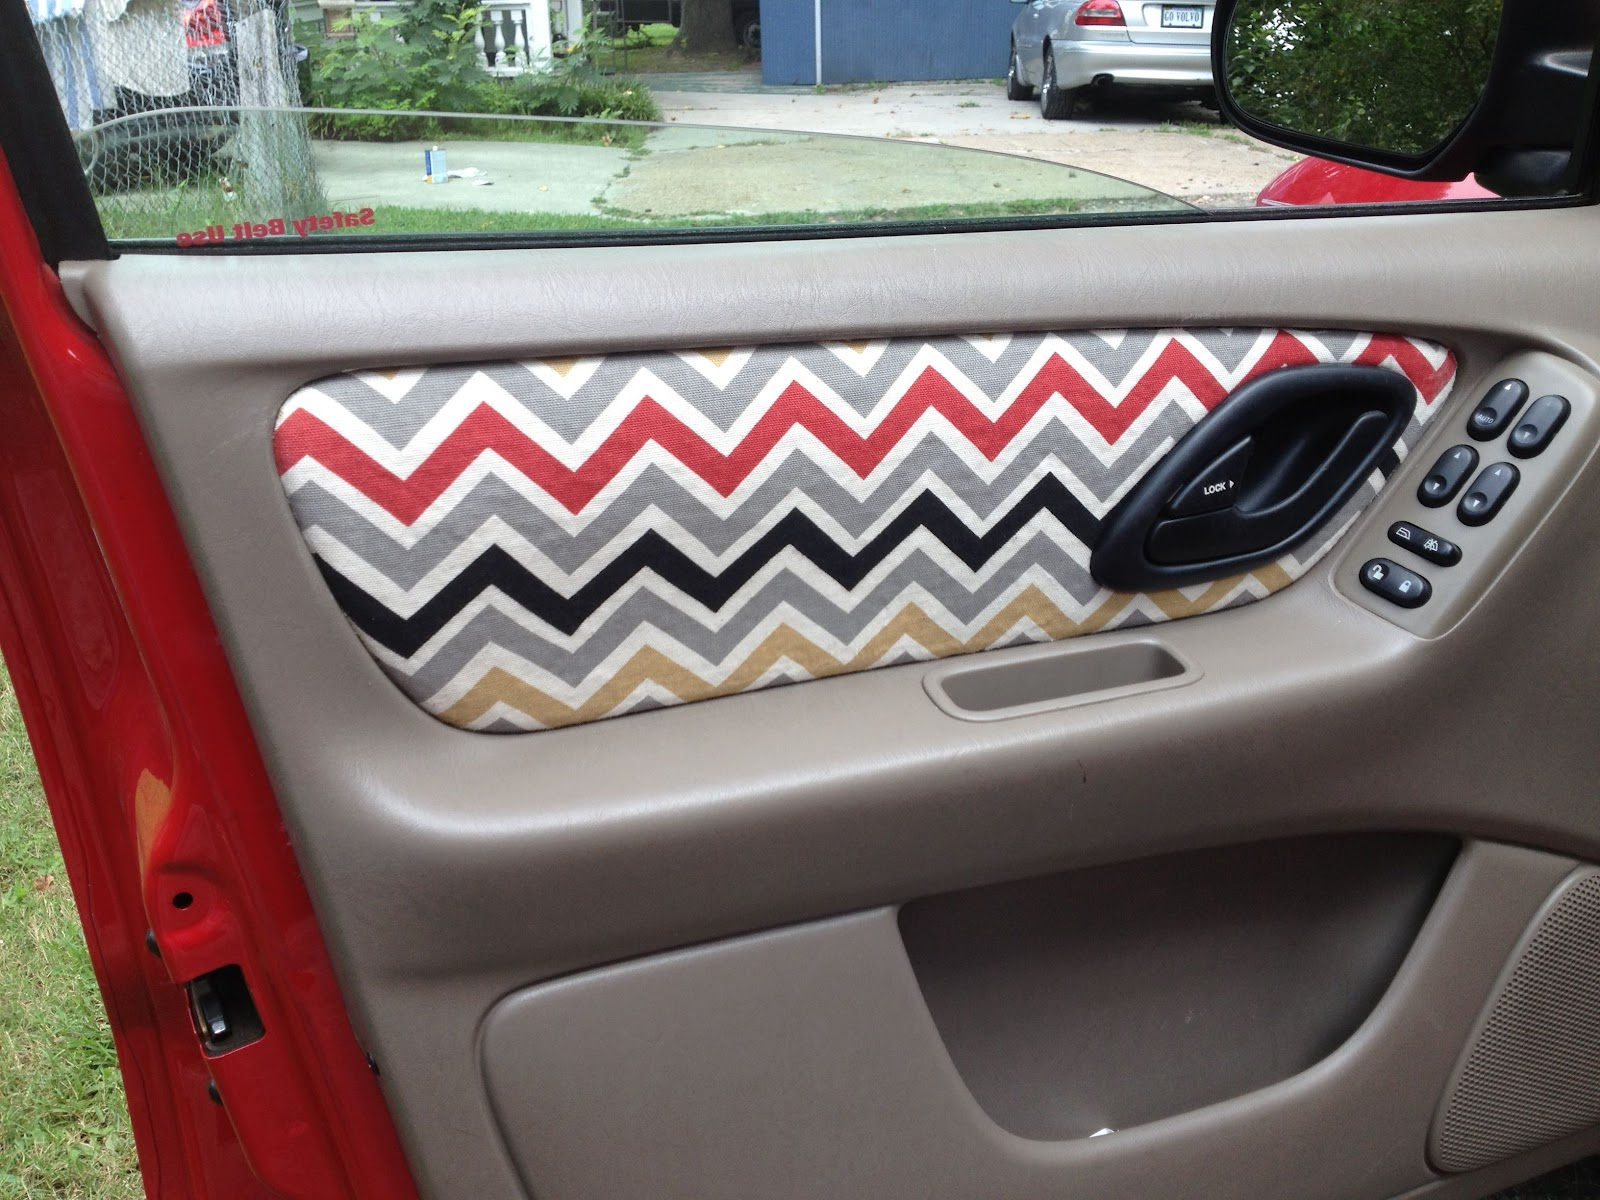 DIY cute fabric to cover worn-out, faded, or melted standard fabric in your car.